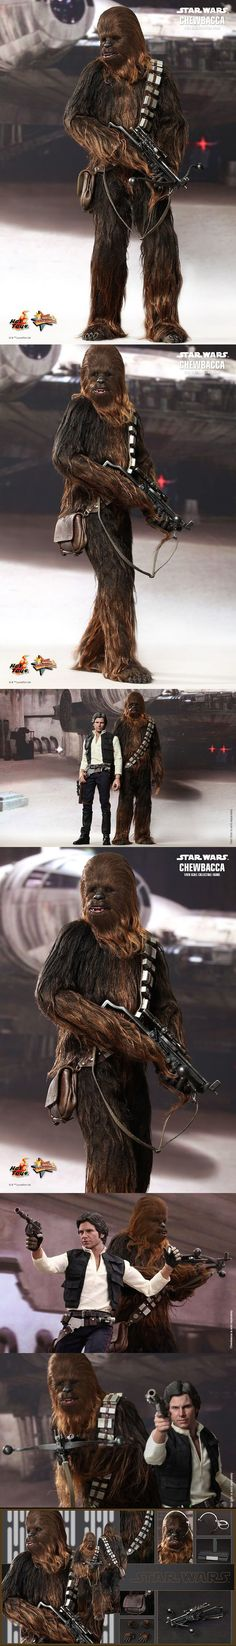 The New Hot Toys Star Wars Chewbacca Figures is Simply Incredible  Read more at http://nerdapproved.com/approved-products/the-new-hot-toys-star-wars-han-solo-and-chewbacca-figures-are-simply-incredible/#T0IVBoJGx8vkc7Ws.99